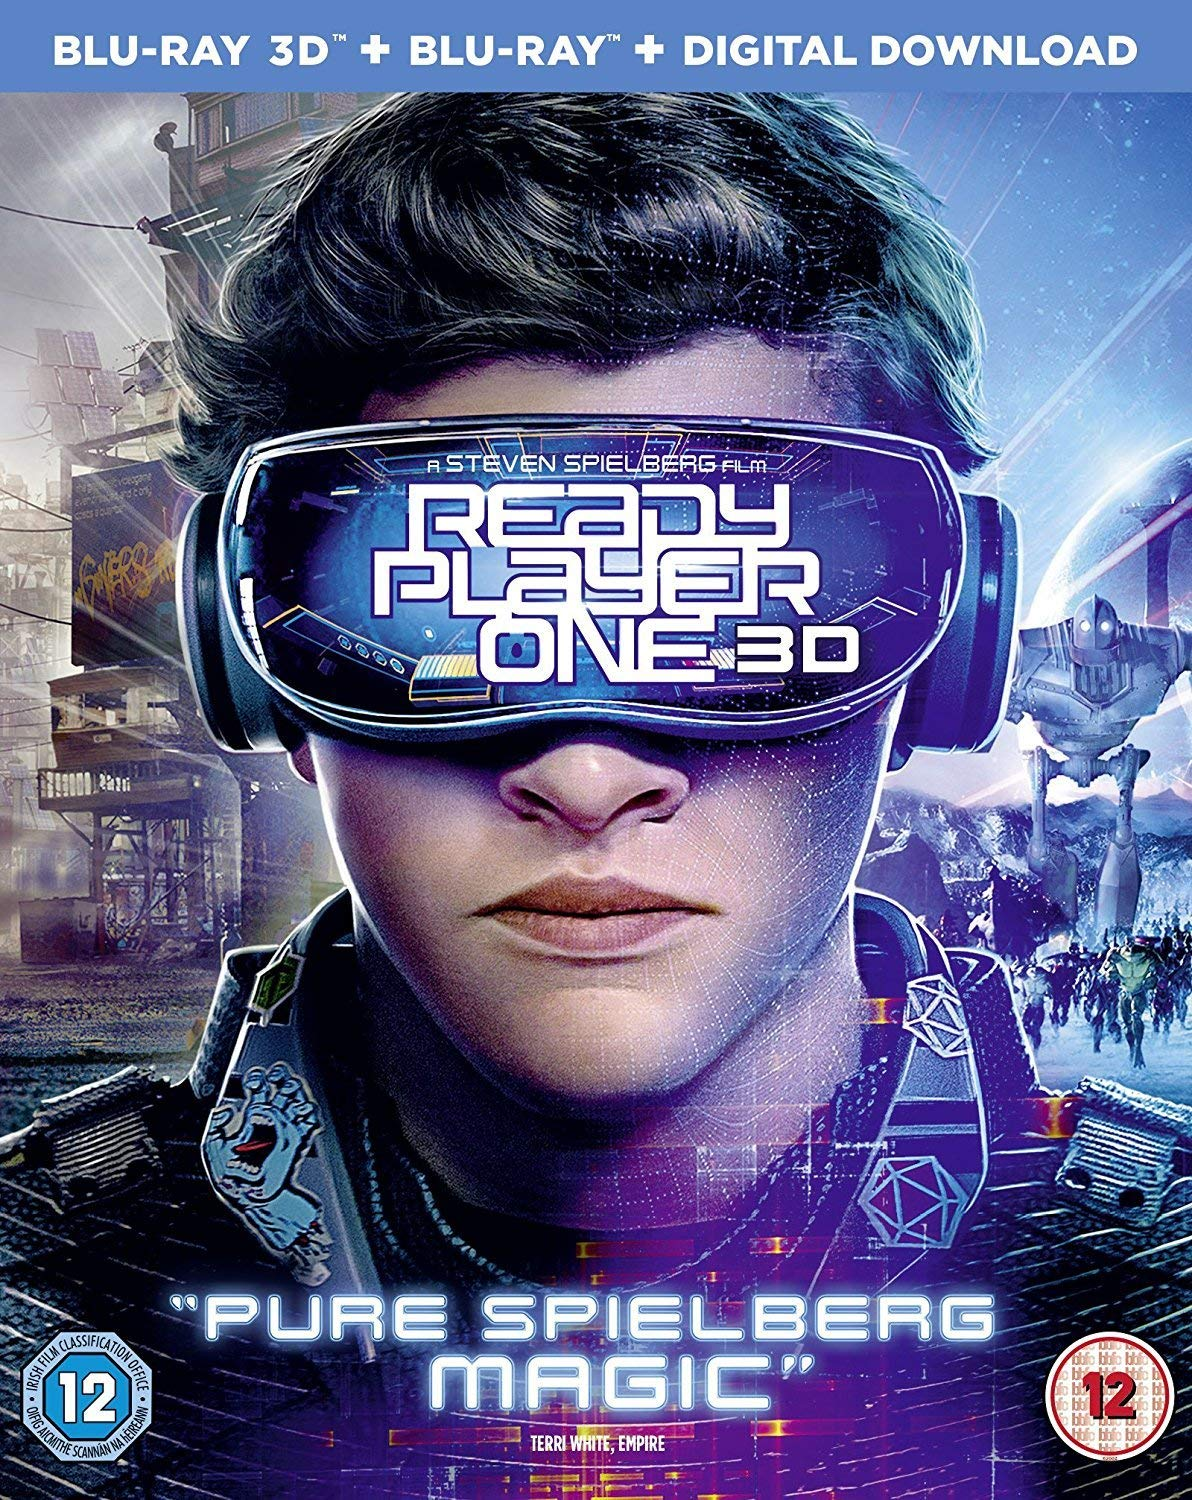 Ready Player One 3d Blu Ray Blu Ray Tye Sheridan Olivia Cooke Ben Mendelsohn Mark Rylance Simon Pegg Steven Spielberg Movies Tv